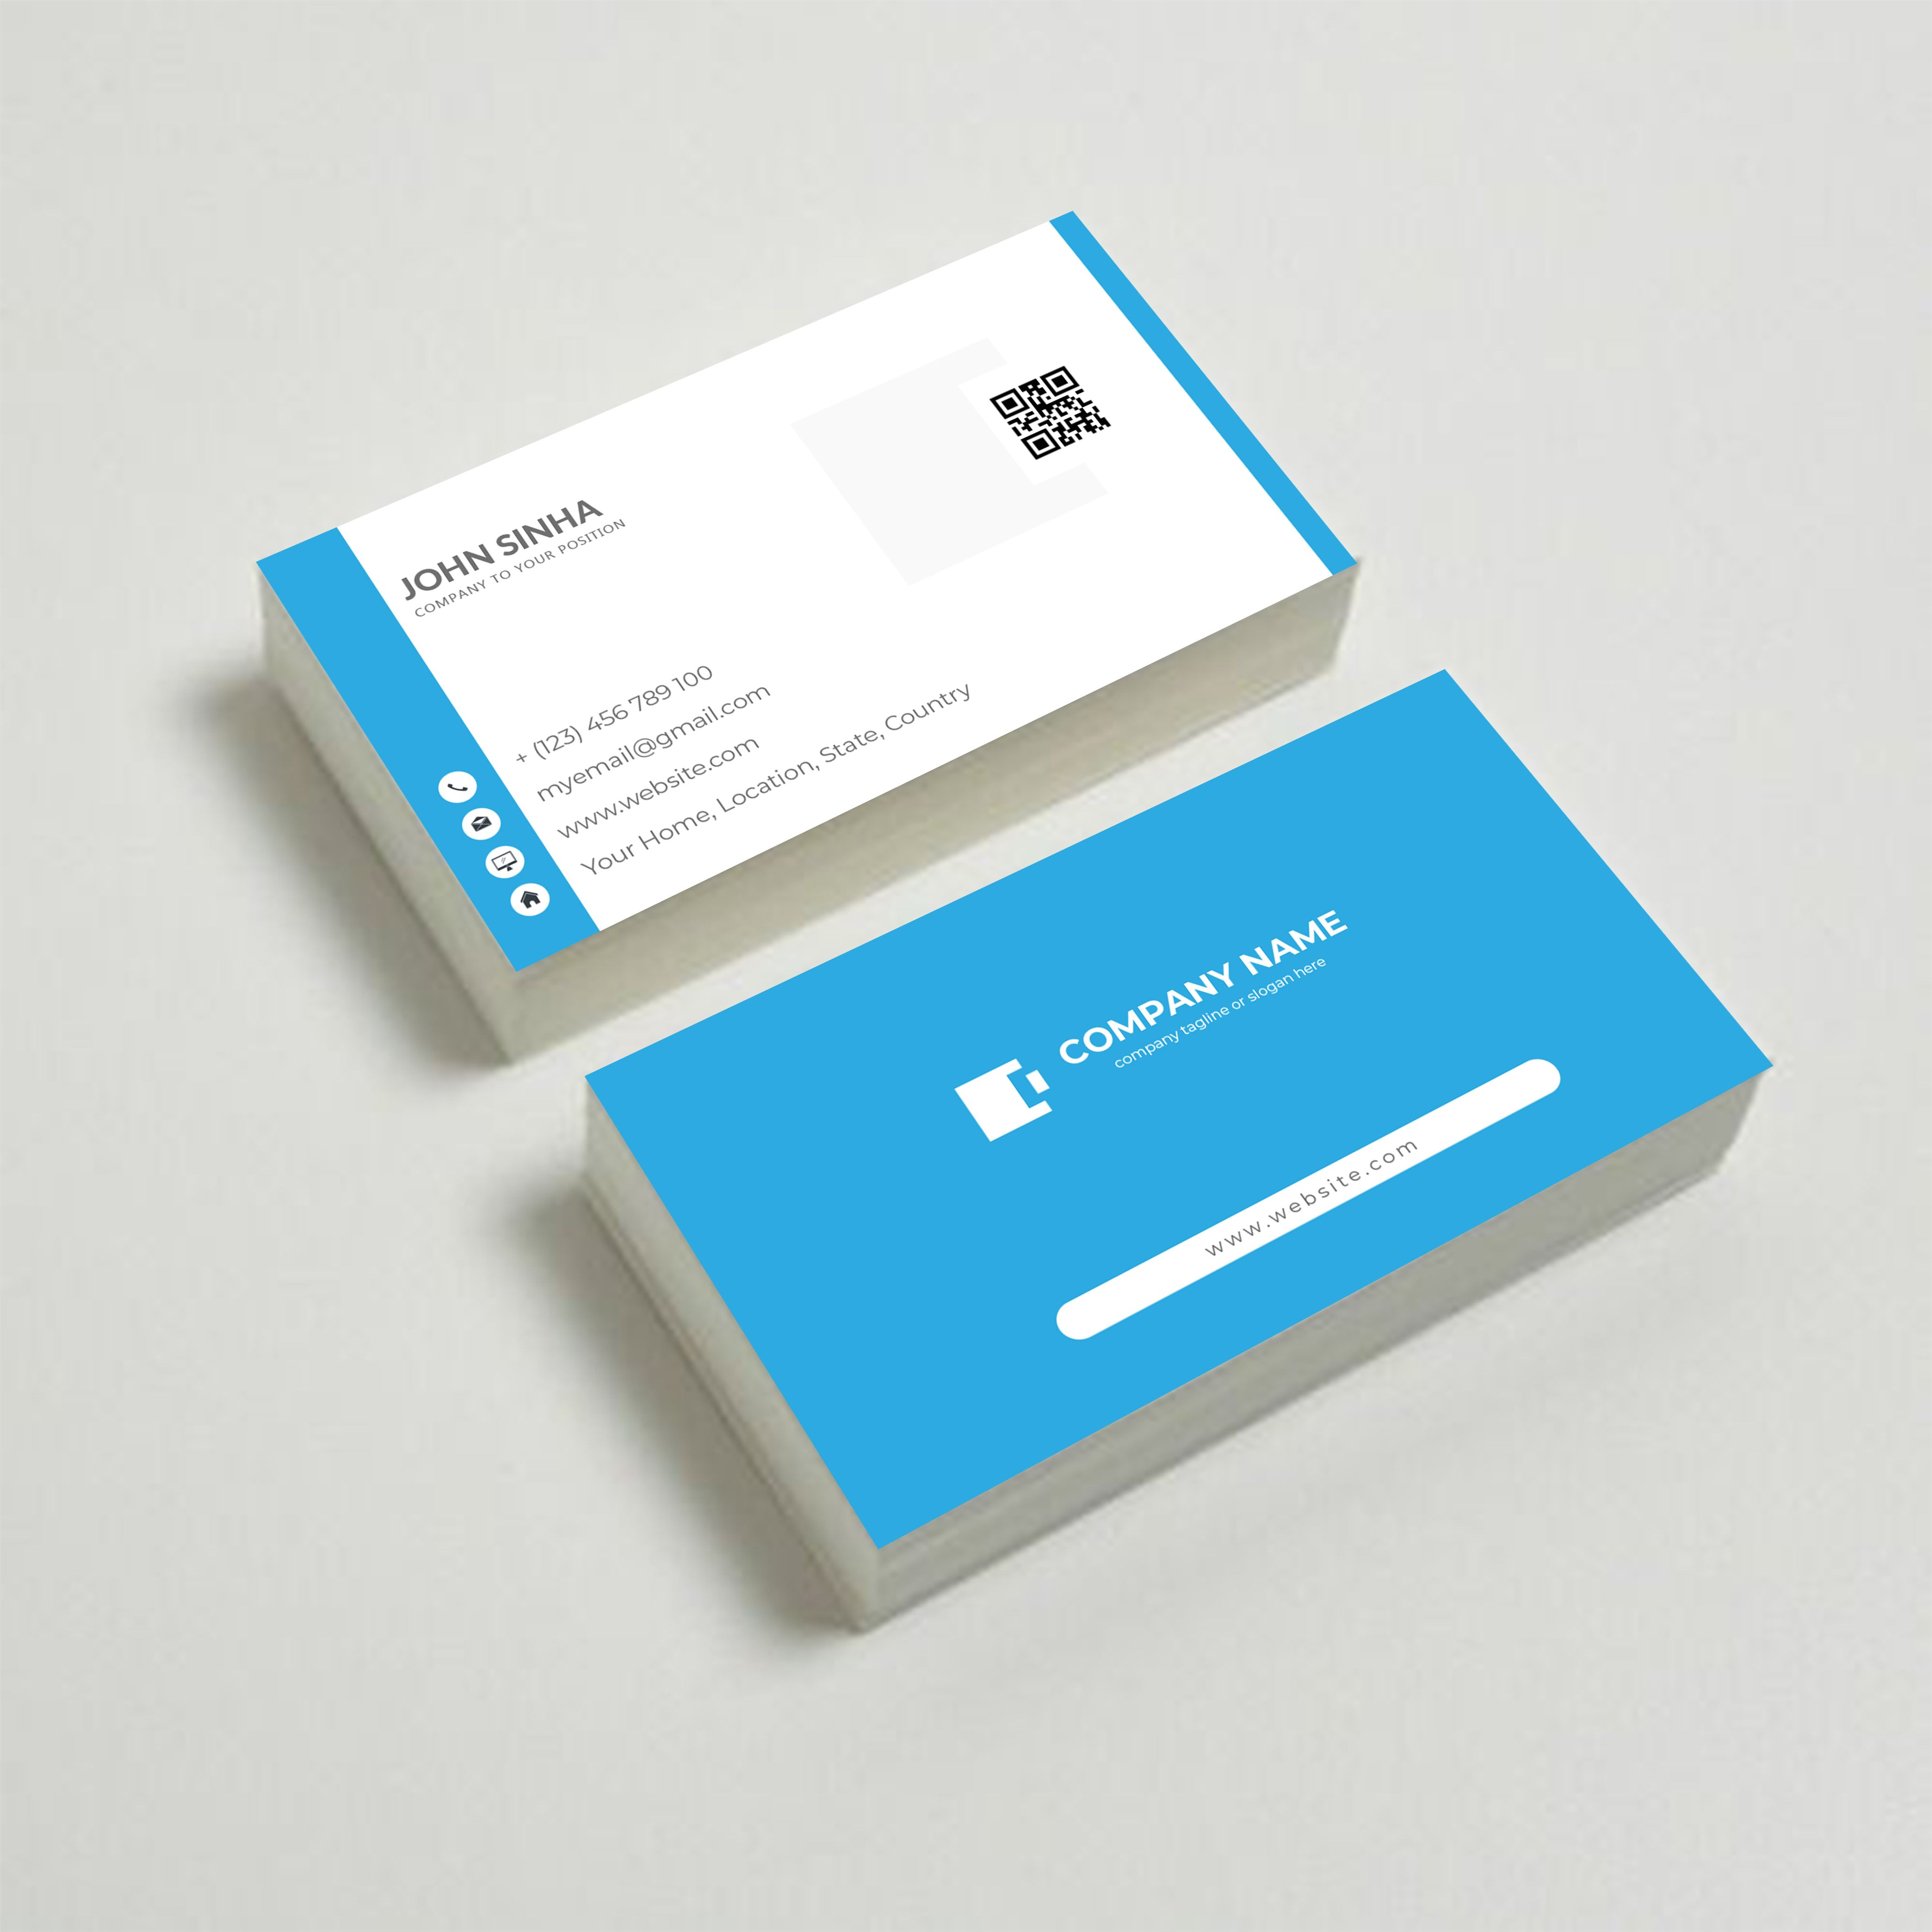 Mahmud99fc I Will Design Professional Real Estate Business Card For 5 On Fiverr Com Professional Business Card Design Business Card Template Design Professional Business Cards